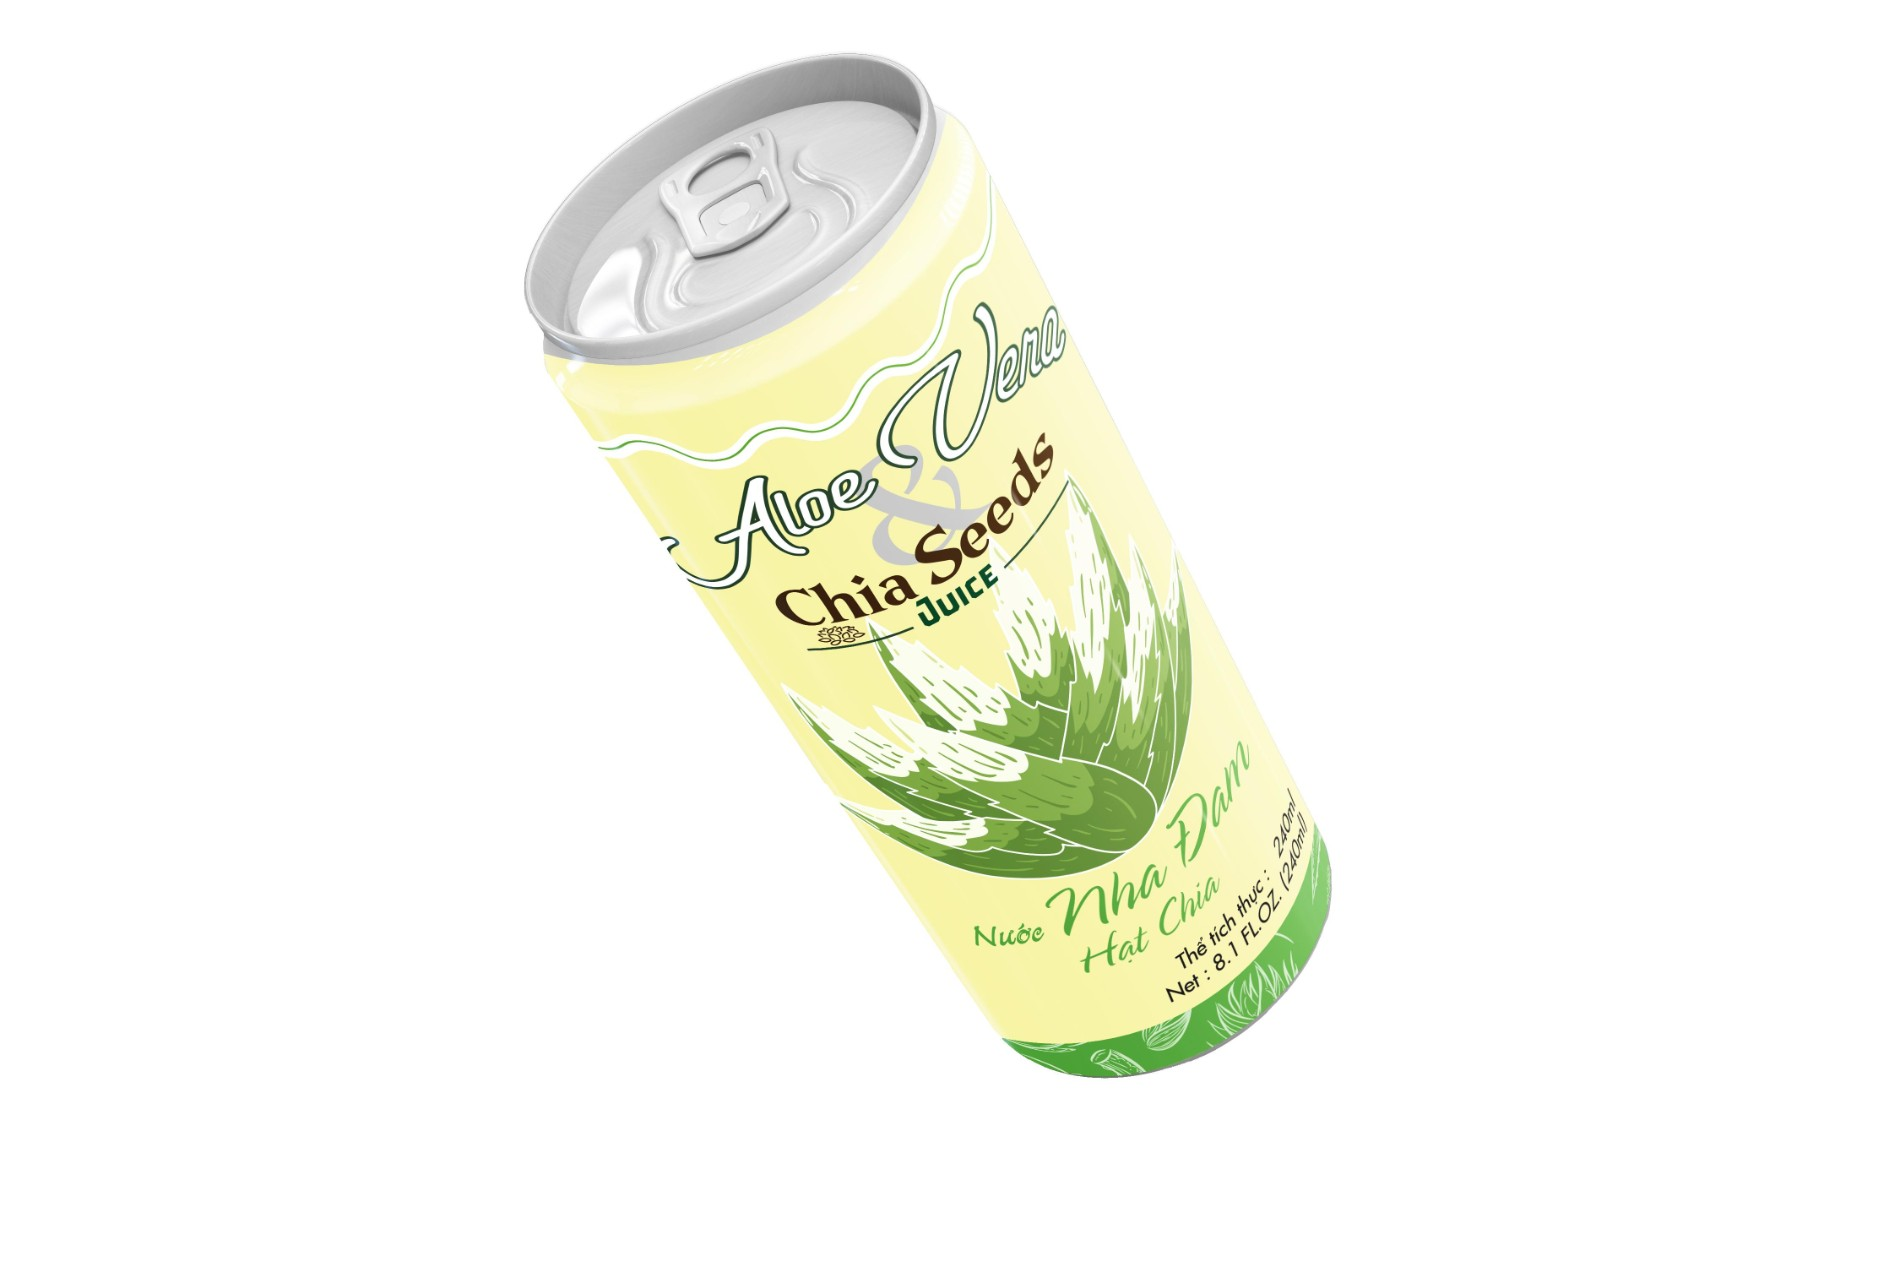 Aloe vera juice with chia seeds